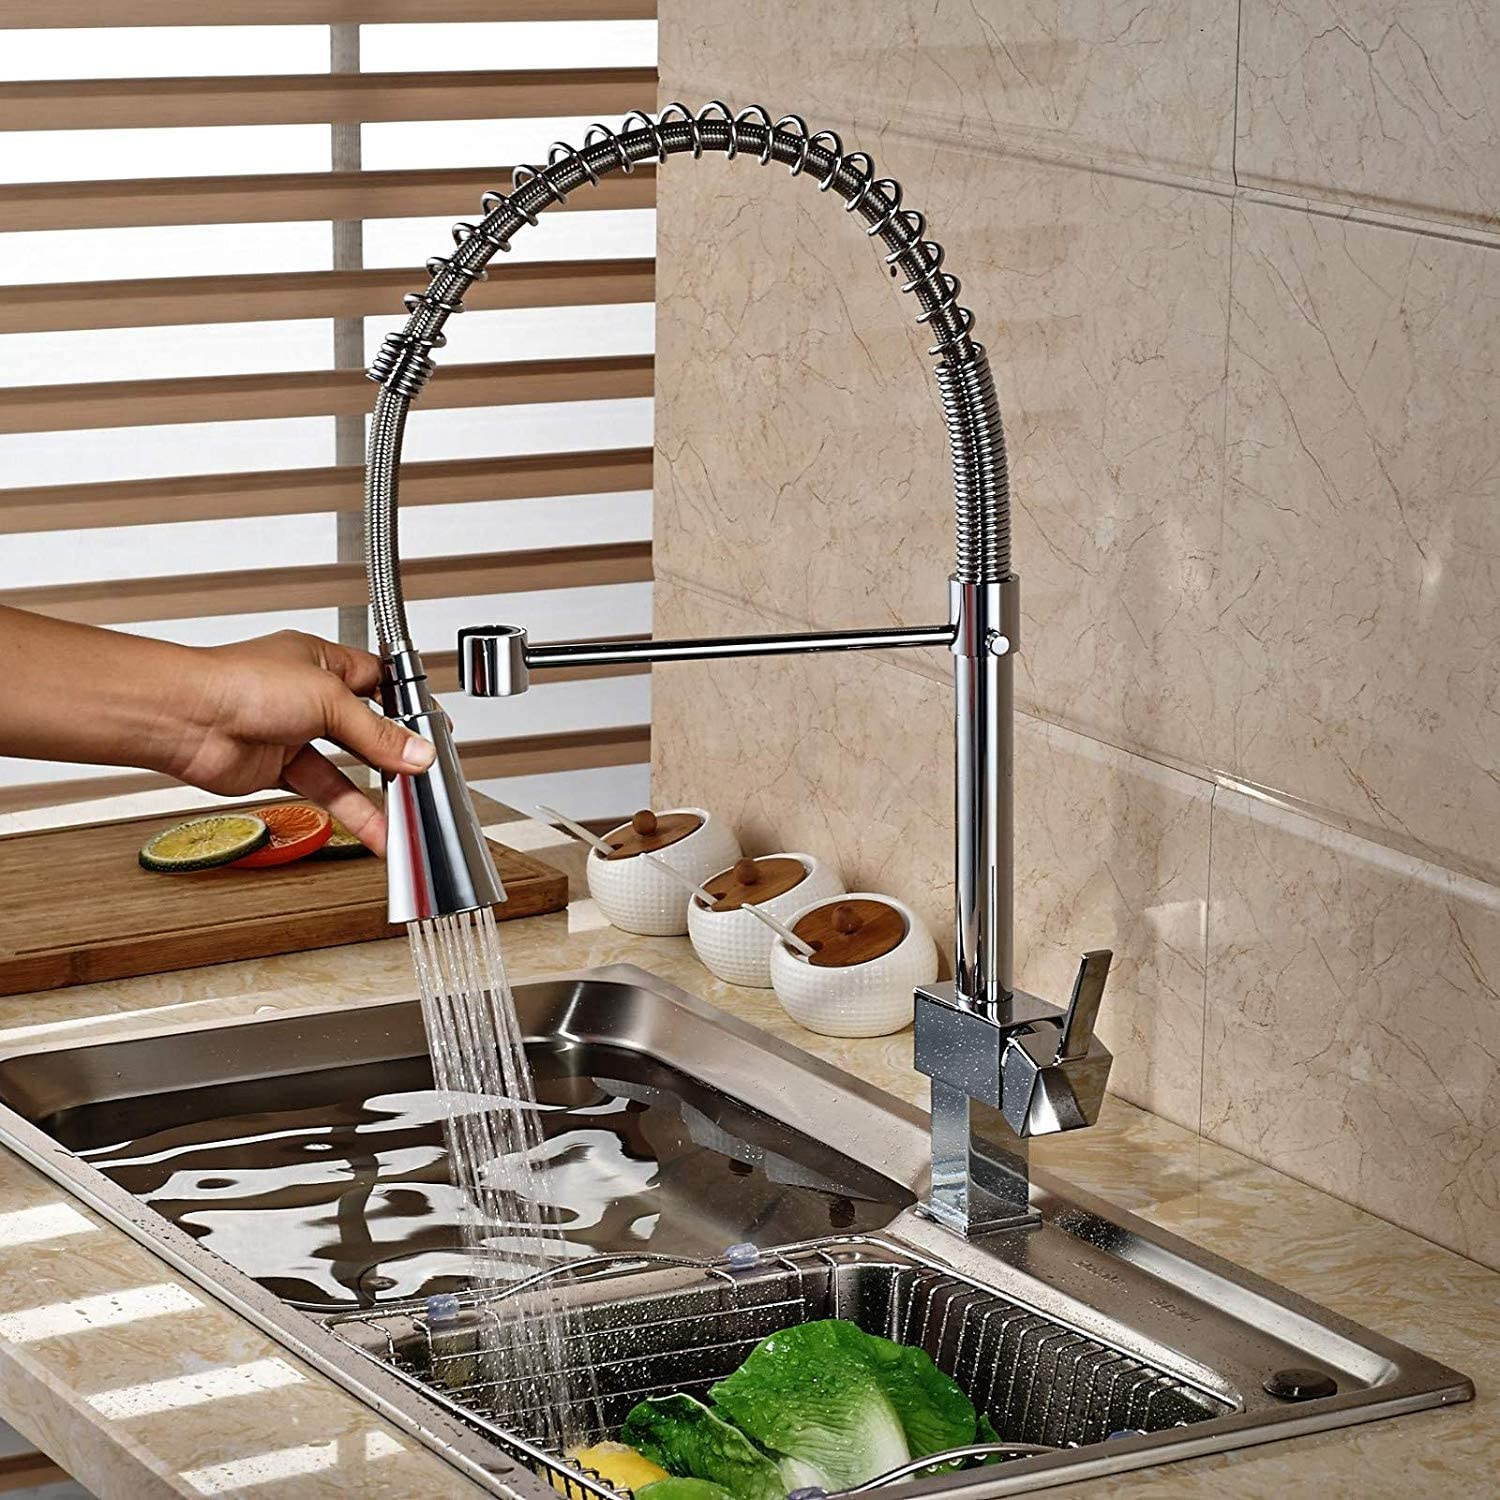 Oudan Modern Chrome Brass Kitchen Faucet Spring Ship Sinks Mixer Tap Single Hole Deck Mounted Hot and Cold Water (color   -, Size   -)